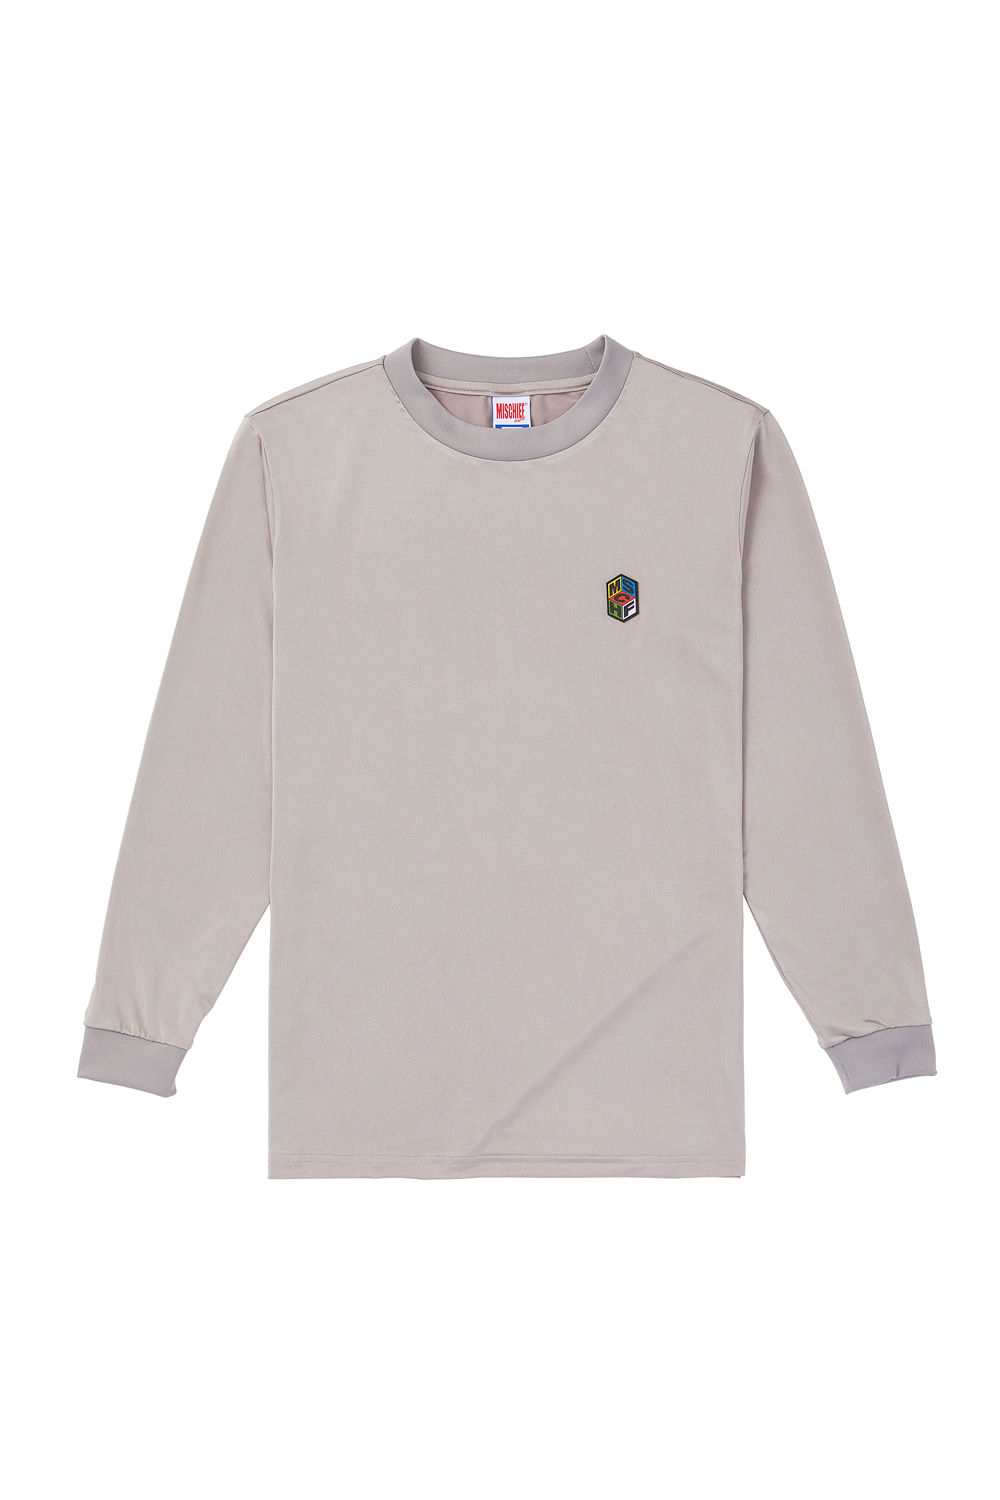 MSCHF_DICE LONG SLEEVE_beige